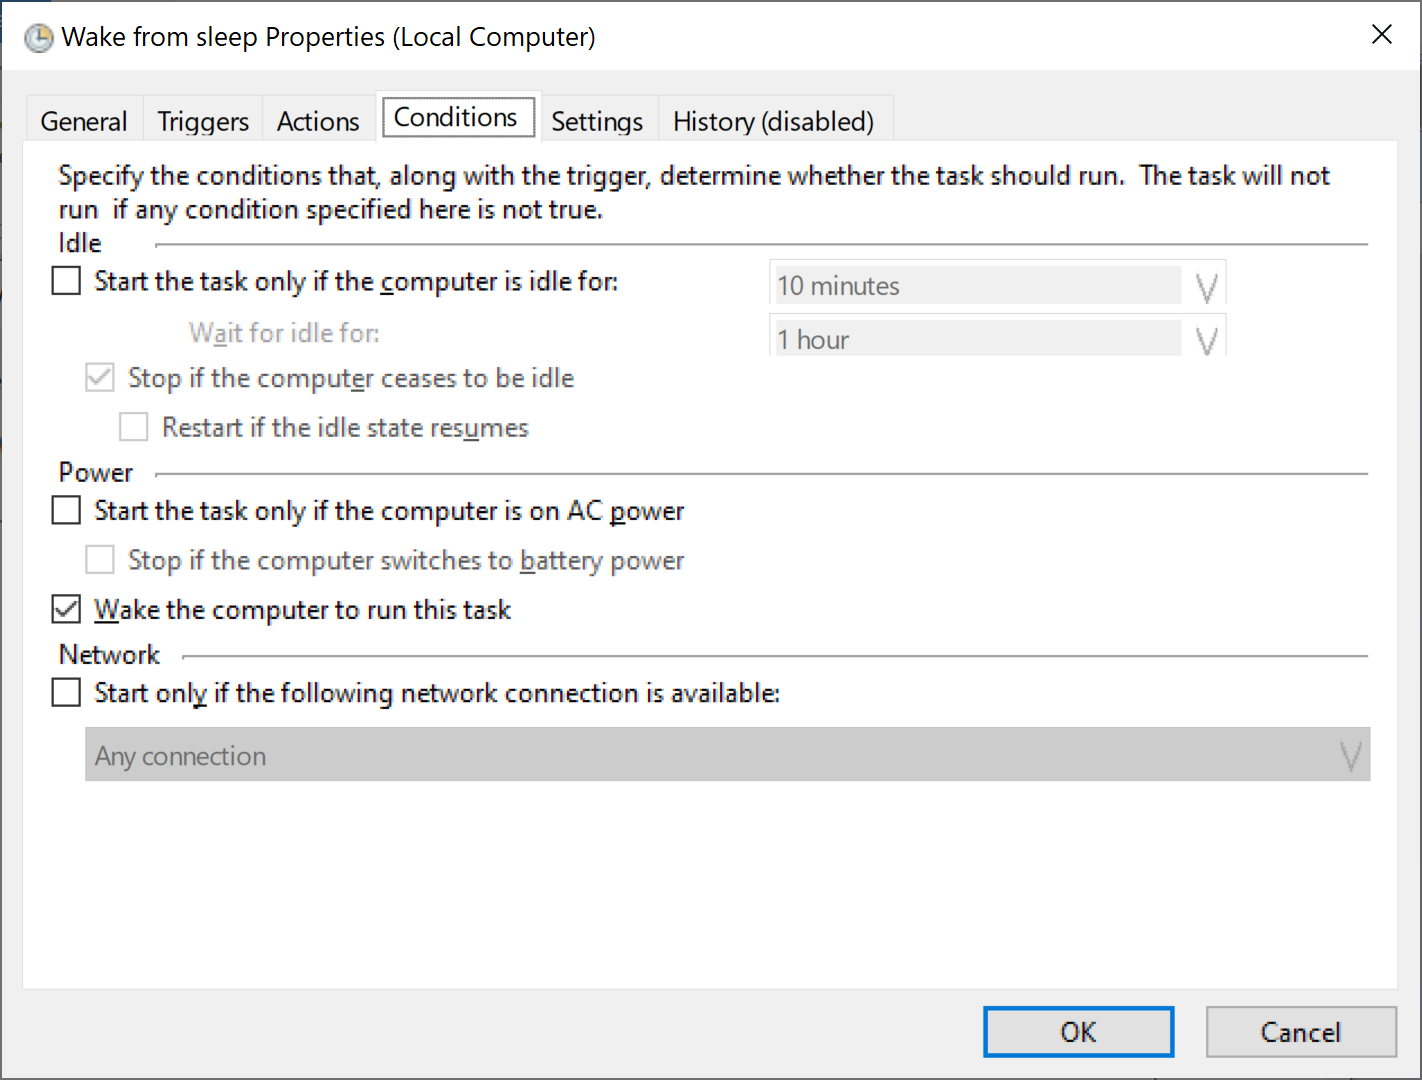 Scheduling my surface to wakeup on time fails 8a06f5cd-96ca-4ce0-b1a2-8b0e55ce91d3?upload=true.png